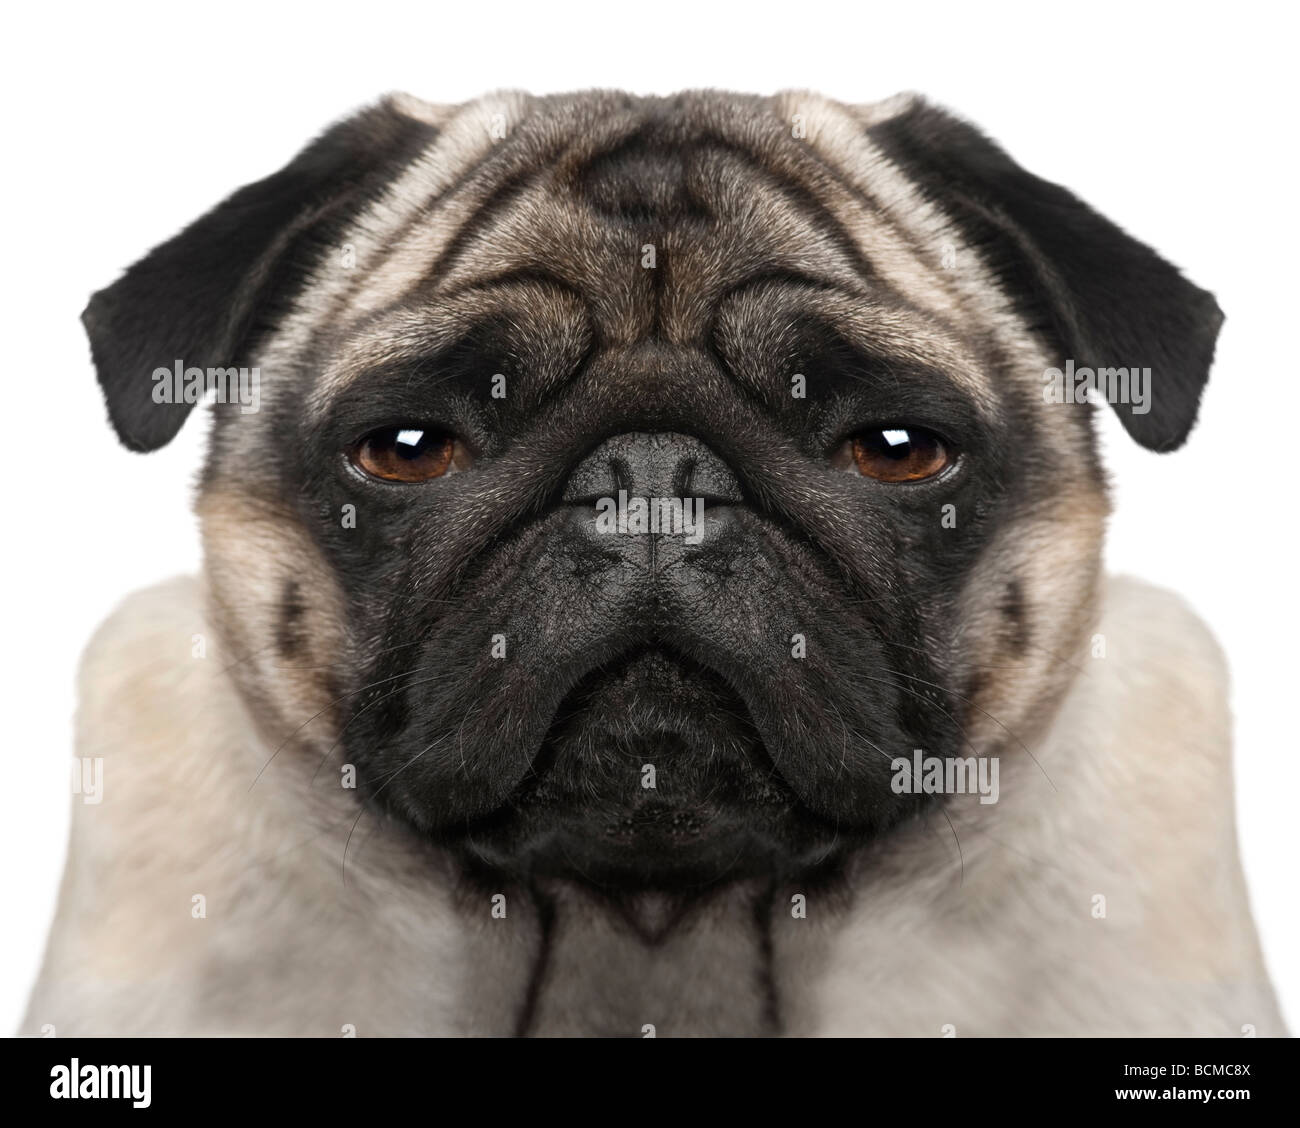 Pug, 4 years old, in front of a white background, studio shot - Stock Image